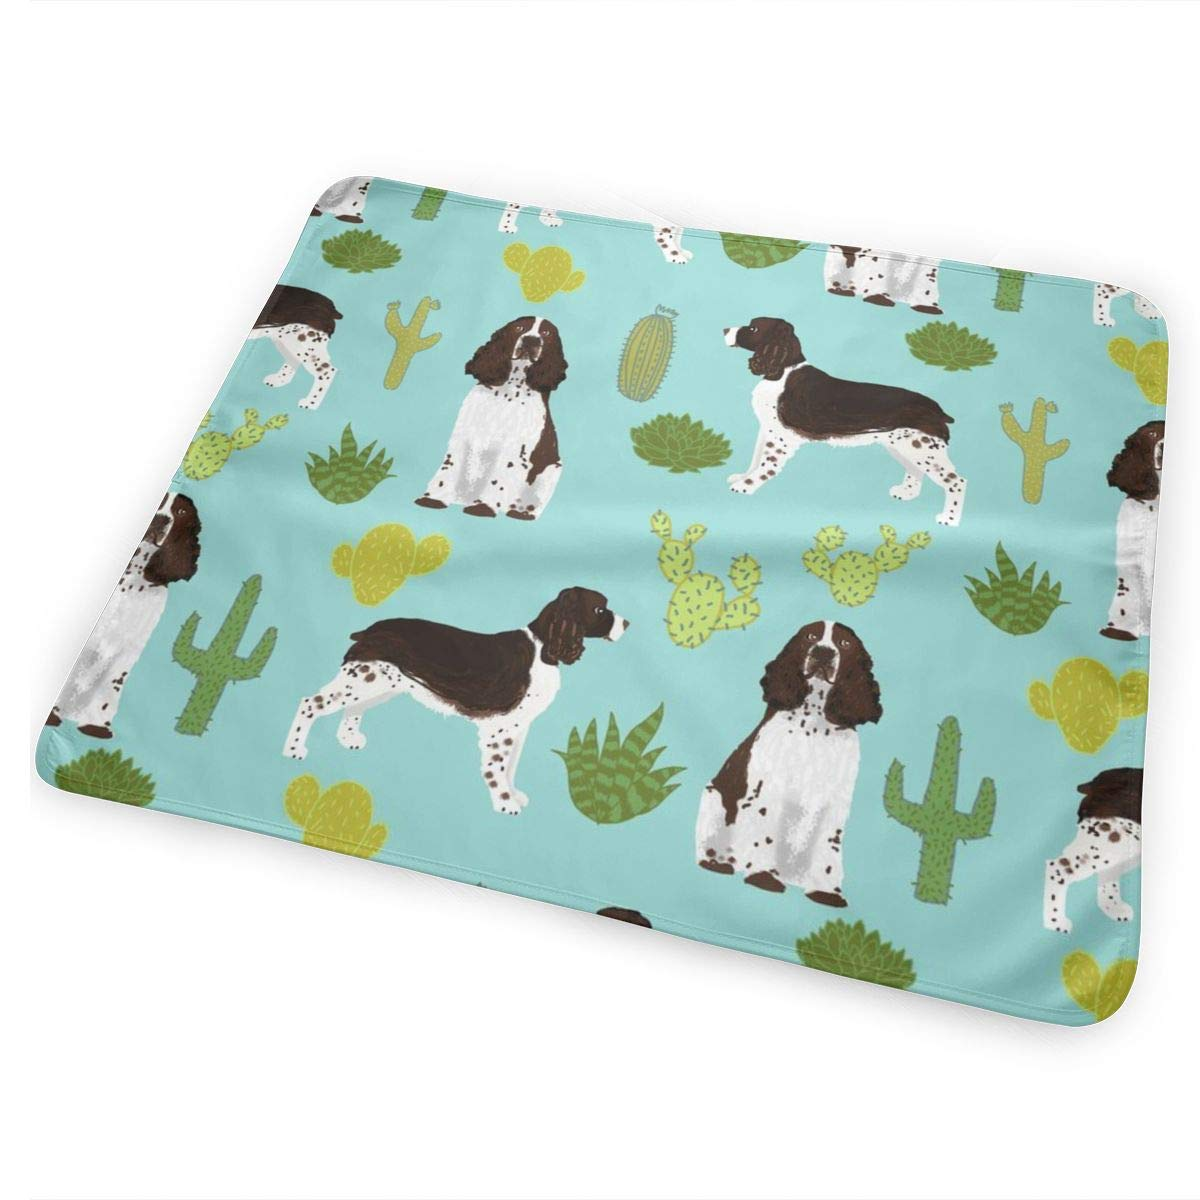 English Springer Spaniel Cactus Fabric Dog Design Dog Fabric Dog Print English Springer Spaniel Dog Design Baby Portable Reusable Changing Pad Mat 25.5″x 31.5″